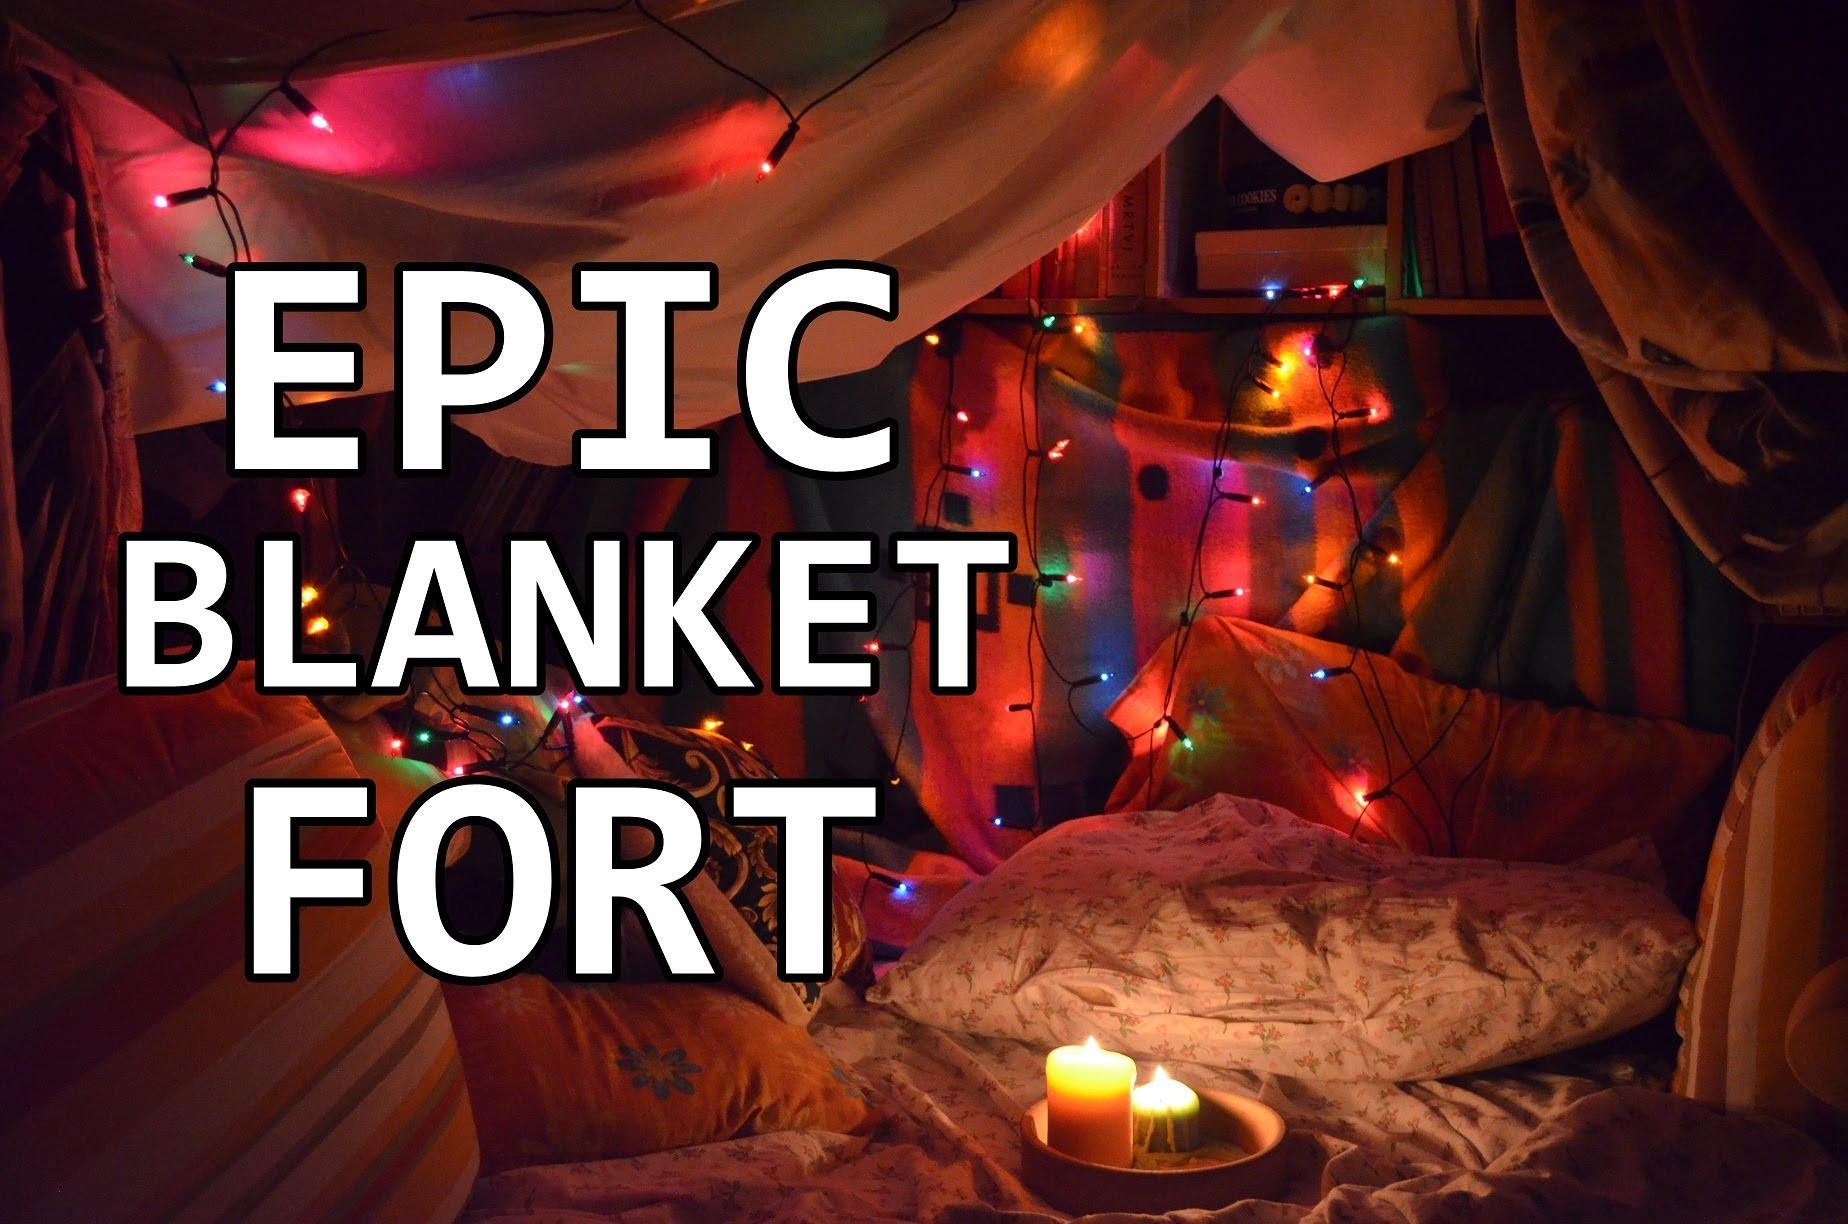 BUILDING A BLANKET FORT